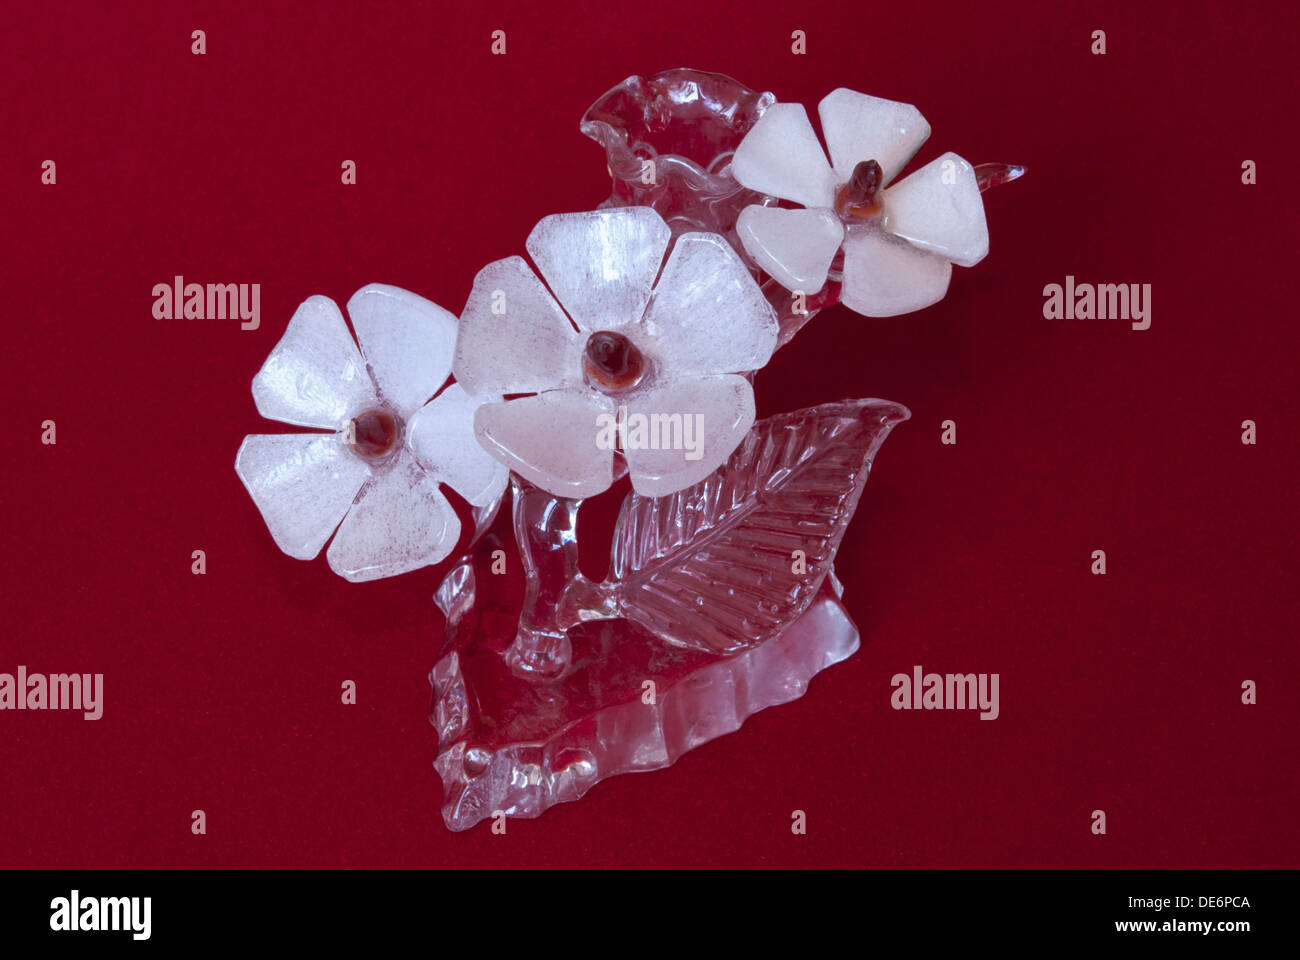 Candlestick made of rock crystal on a red background. - Stock Image